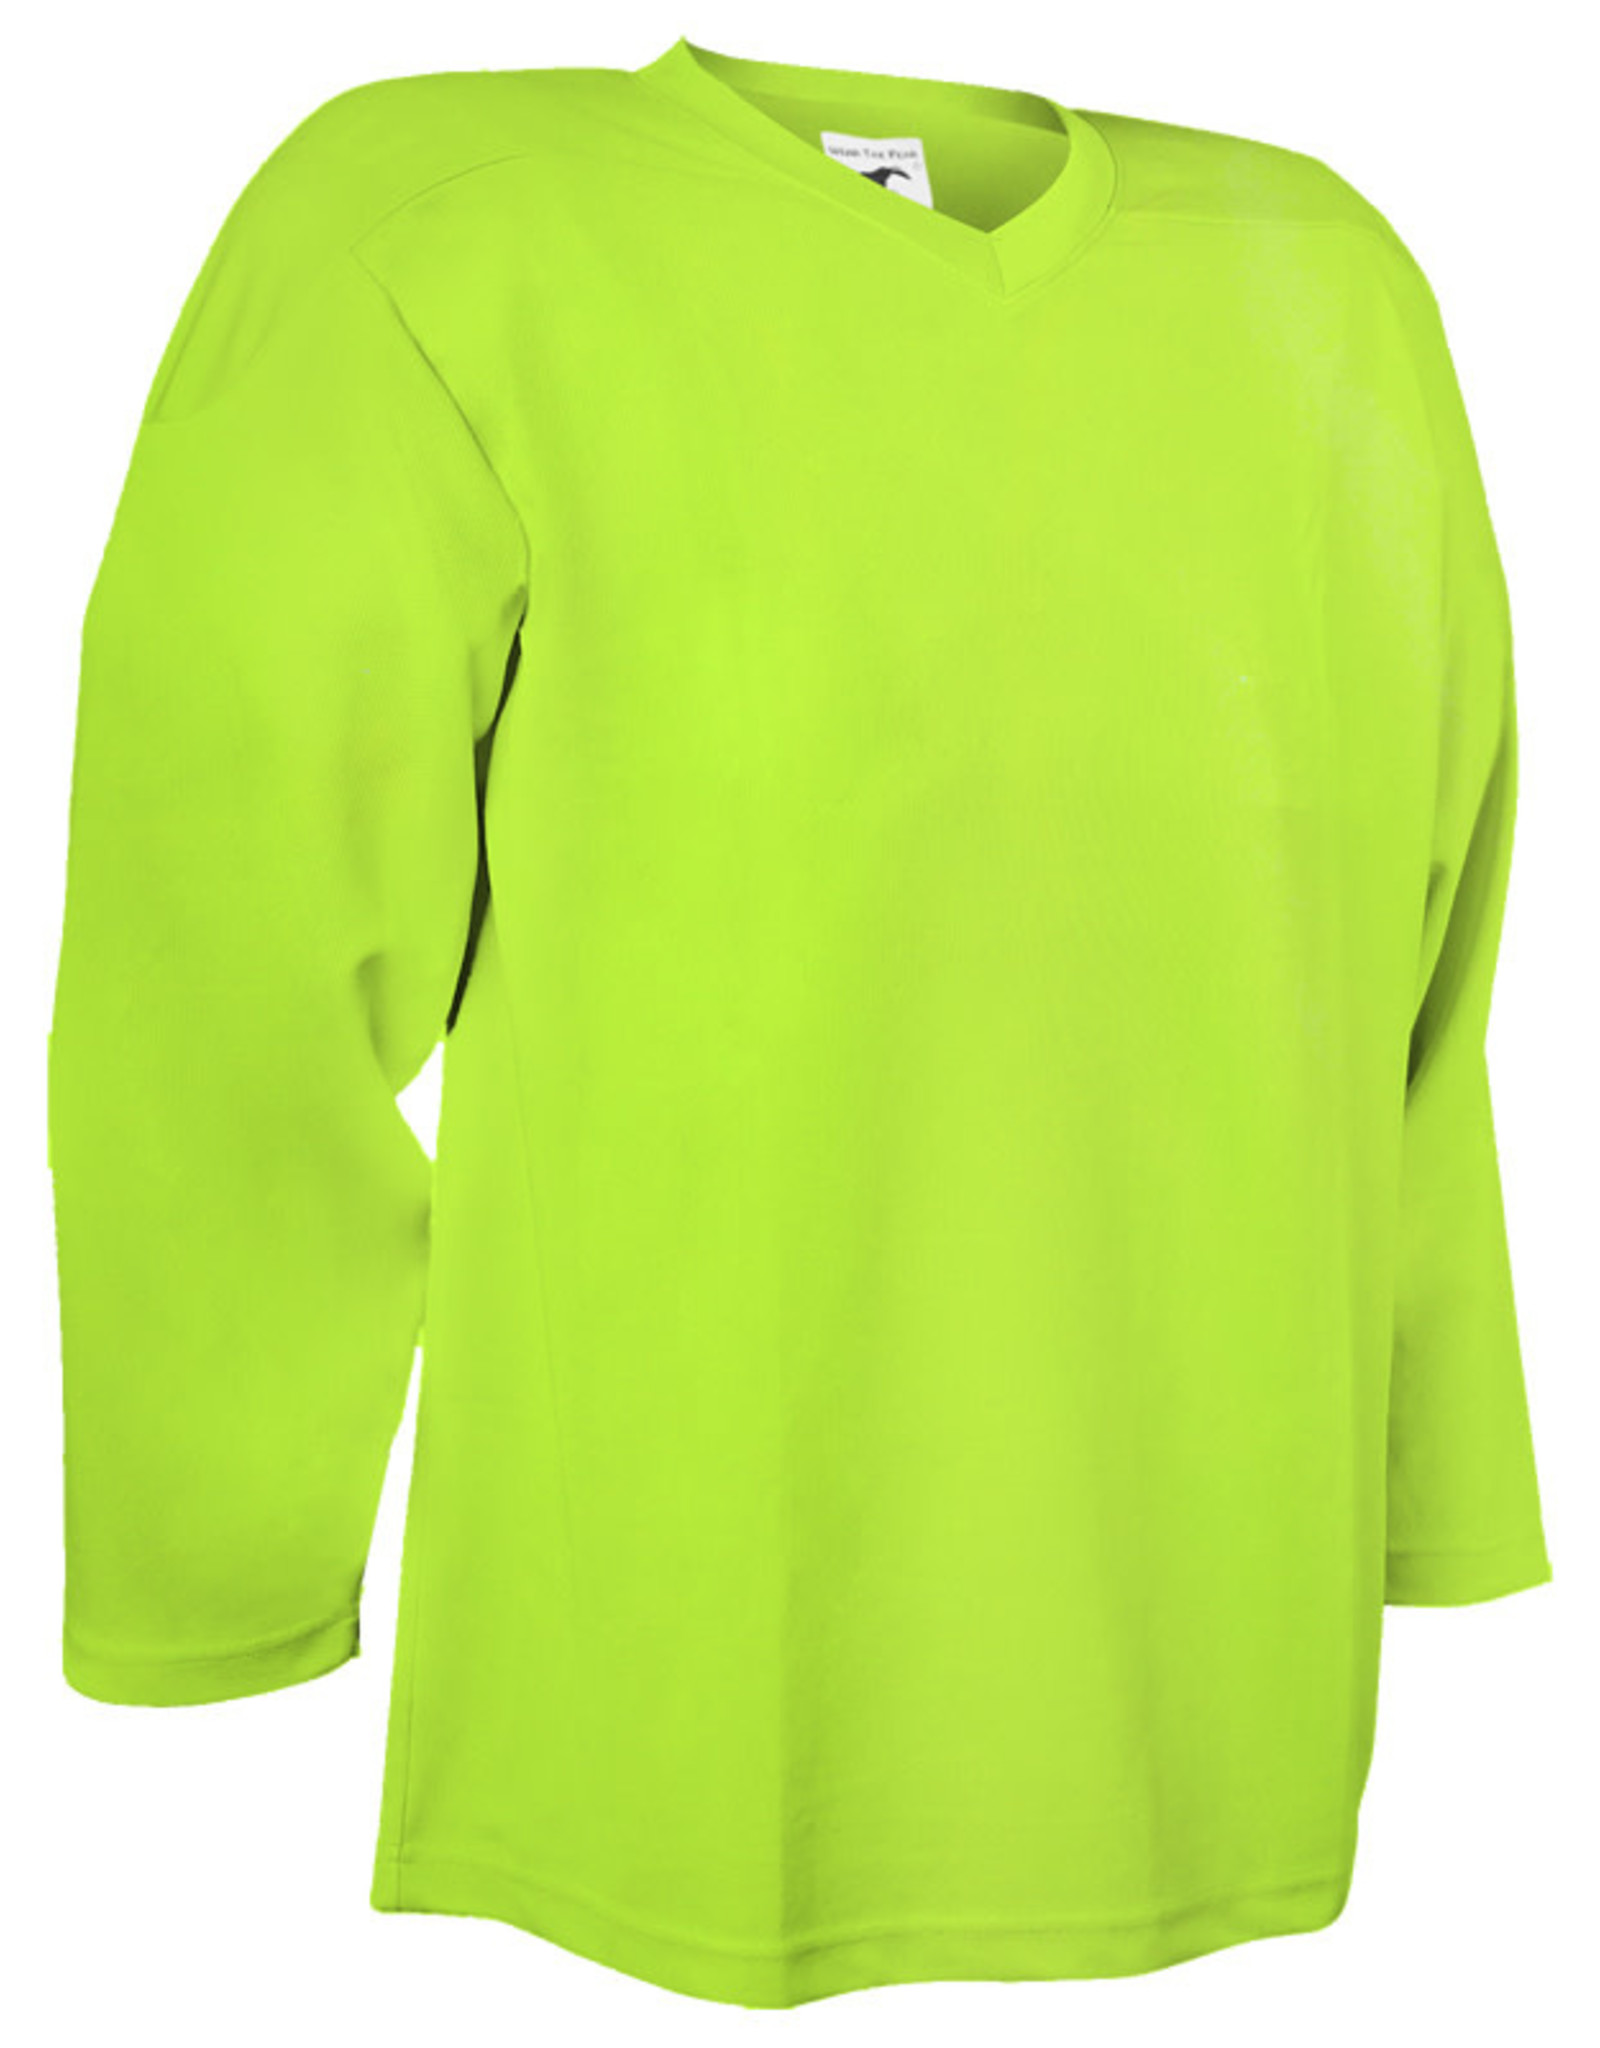 Pear Sox Pear Sox Air Mesh Practice Jersey (YOUTH NEON YELLOW)